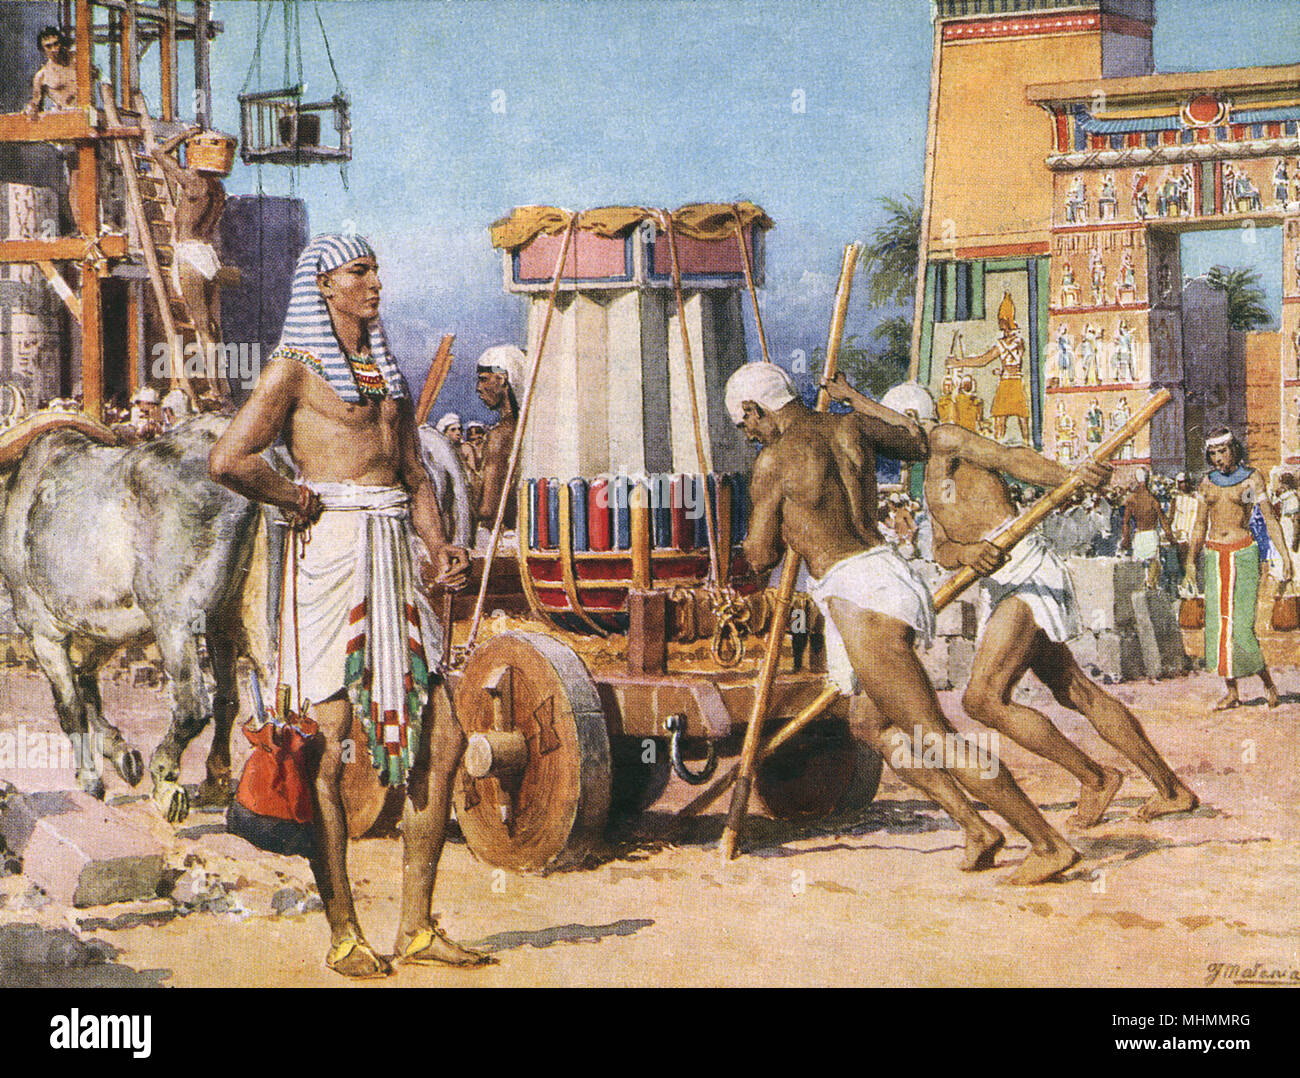 Workers building a temple or palace for a Pharaoh in Ancient